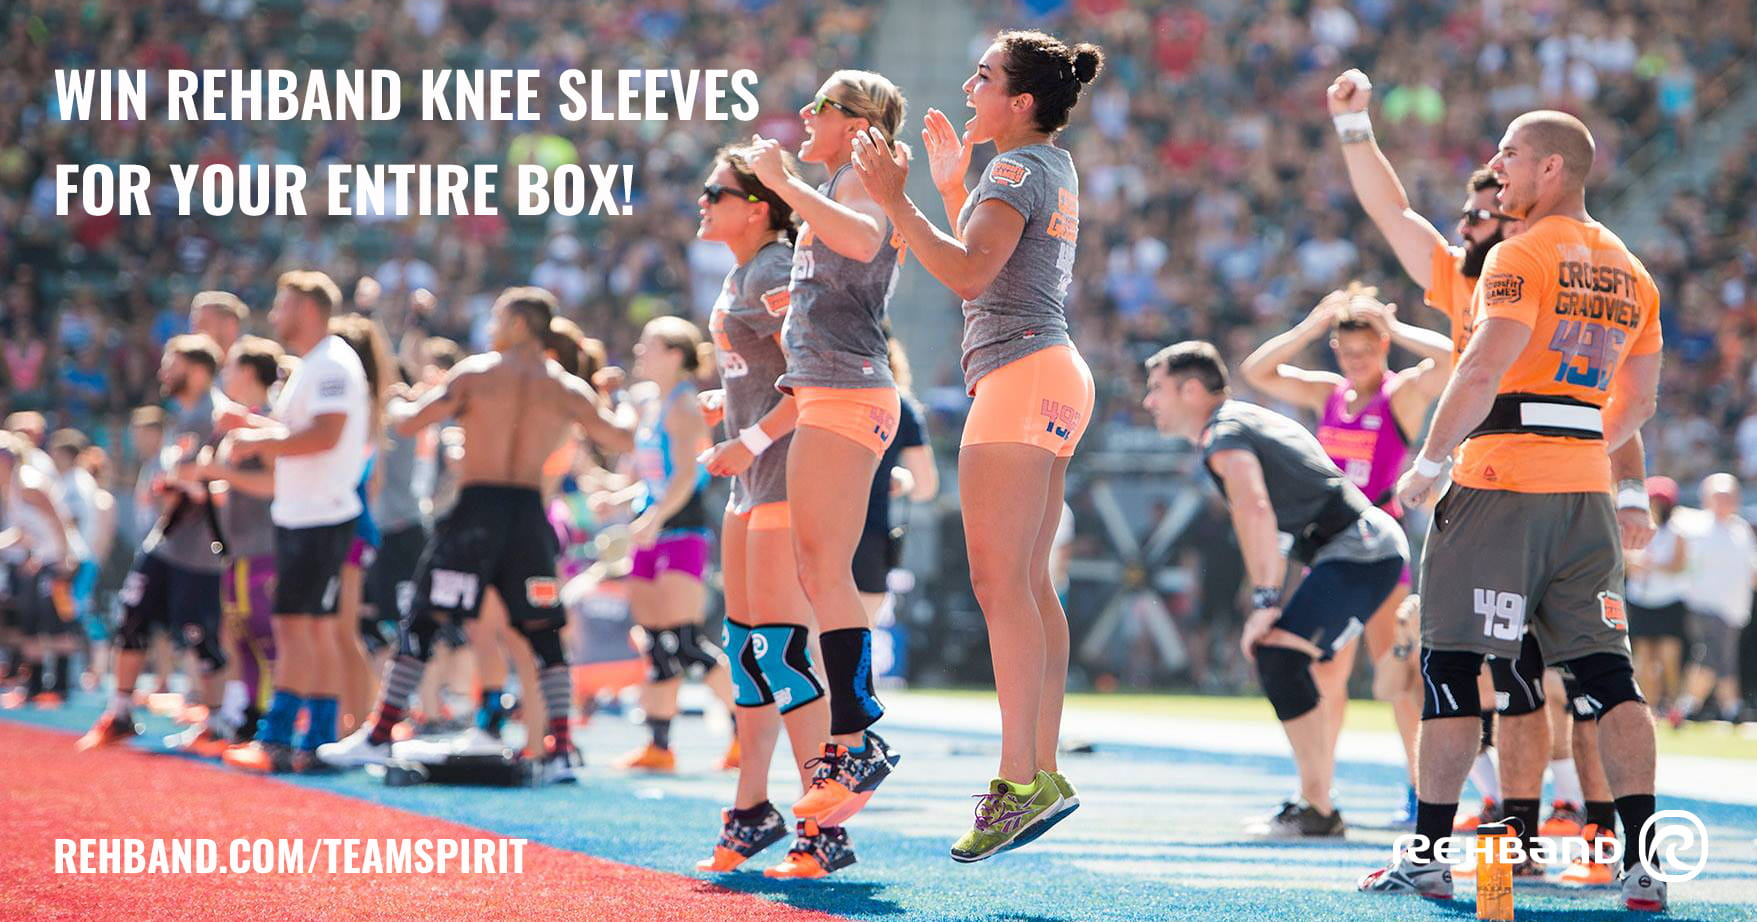 Rehband's Team Spirit Contest 2015 – Win knee sleeves for your ENTIRE box!